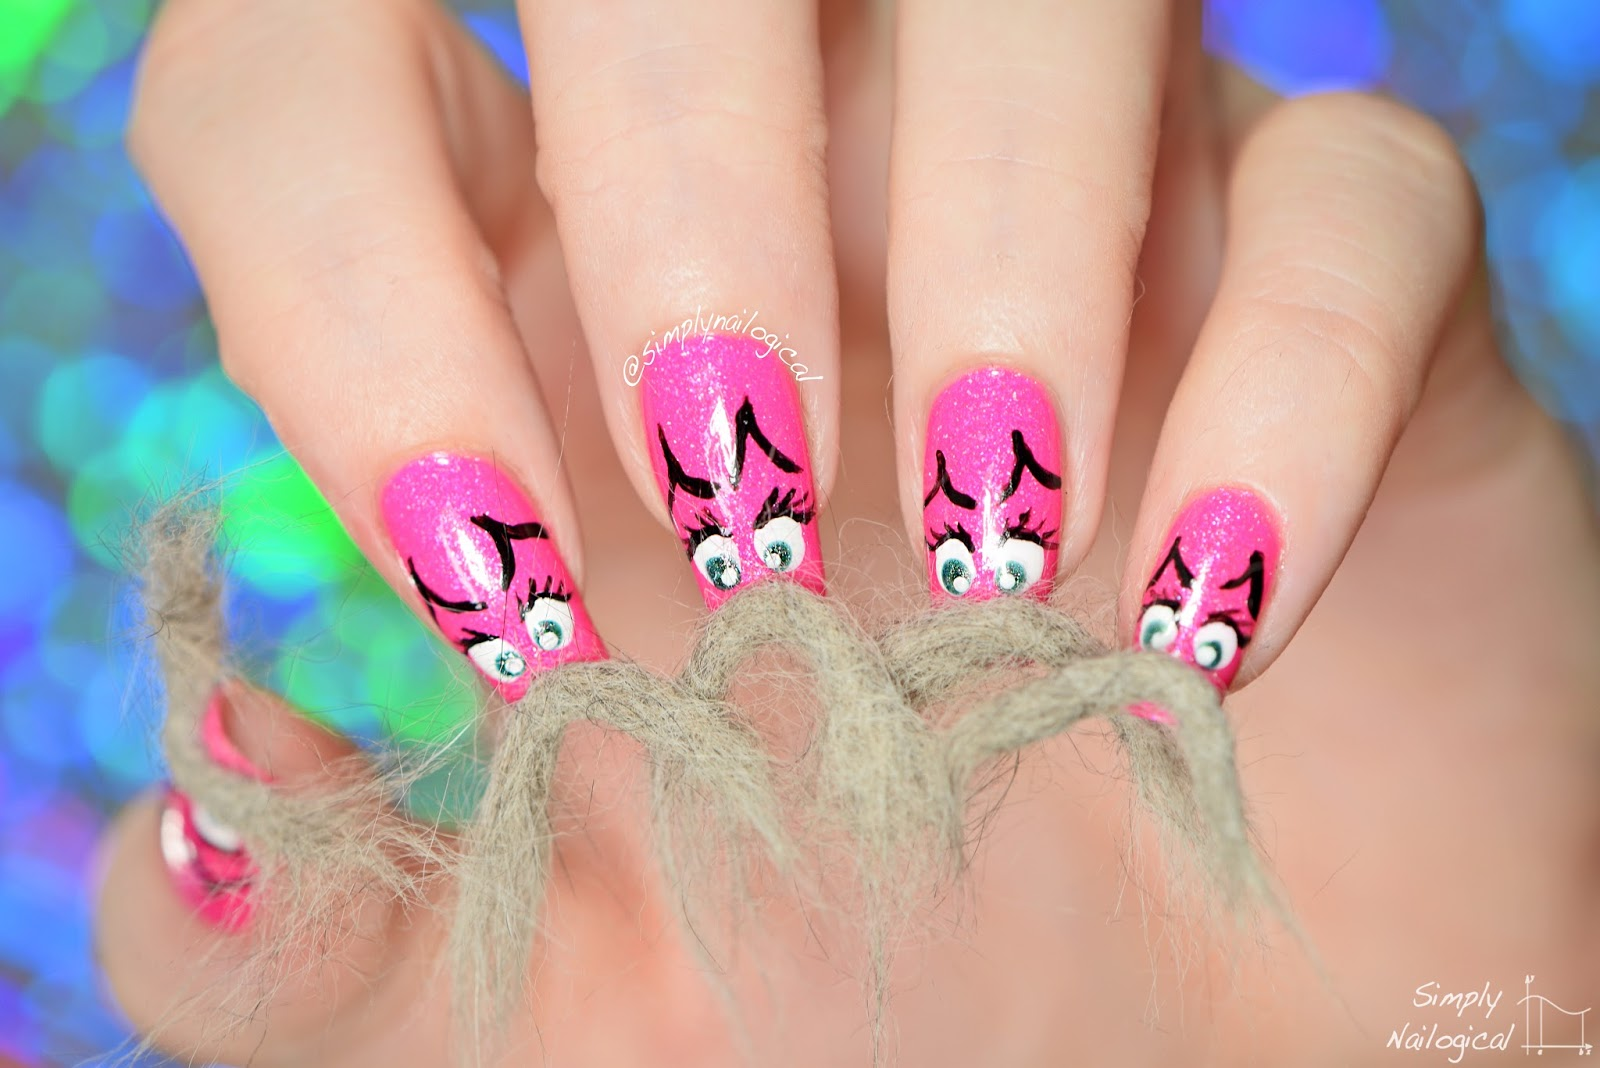 Simply Nailogical: Catstache real cat hair nails for Movember